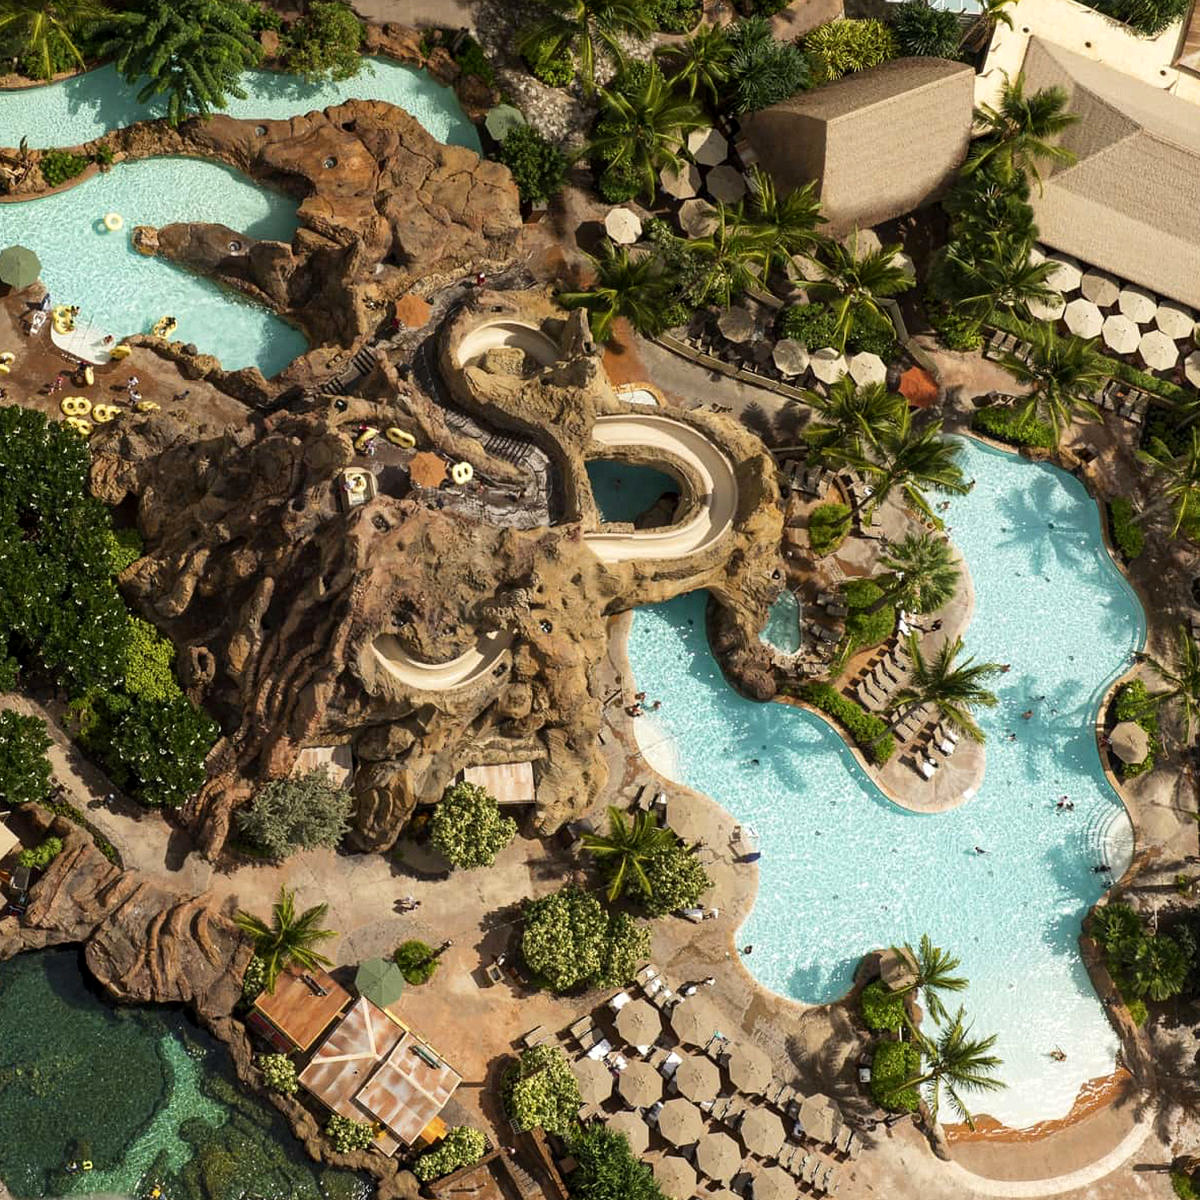 The World's Best Disney Hotel Swimming Pools